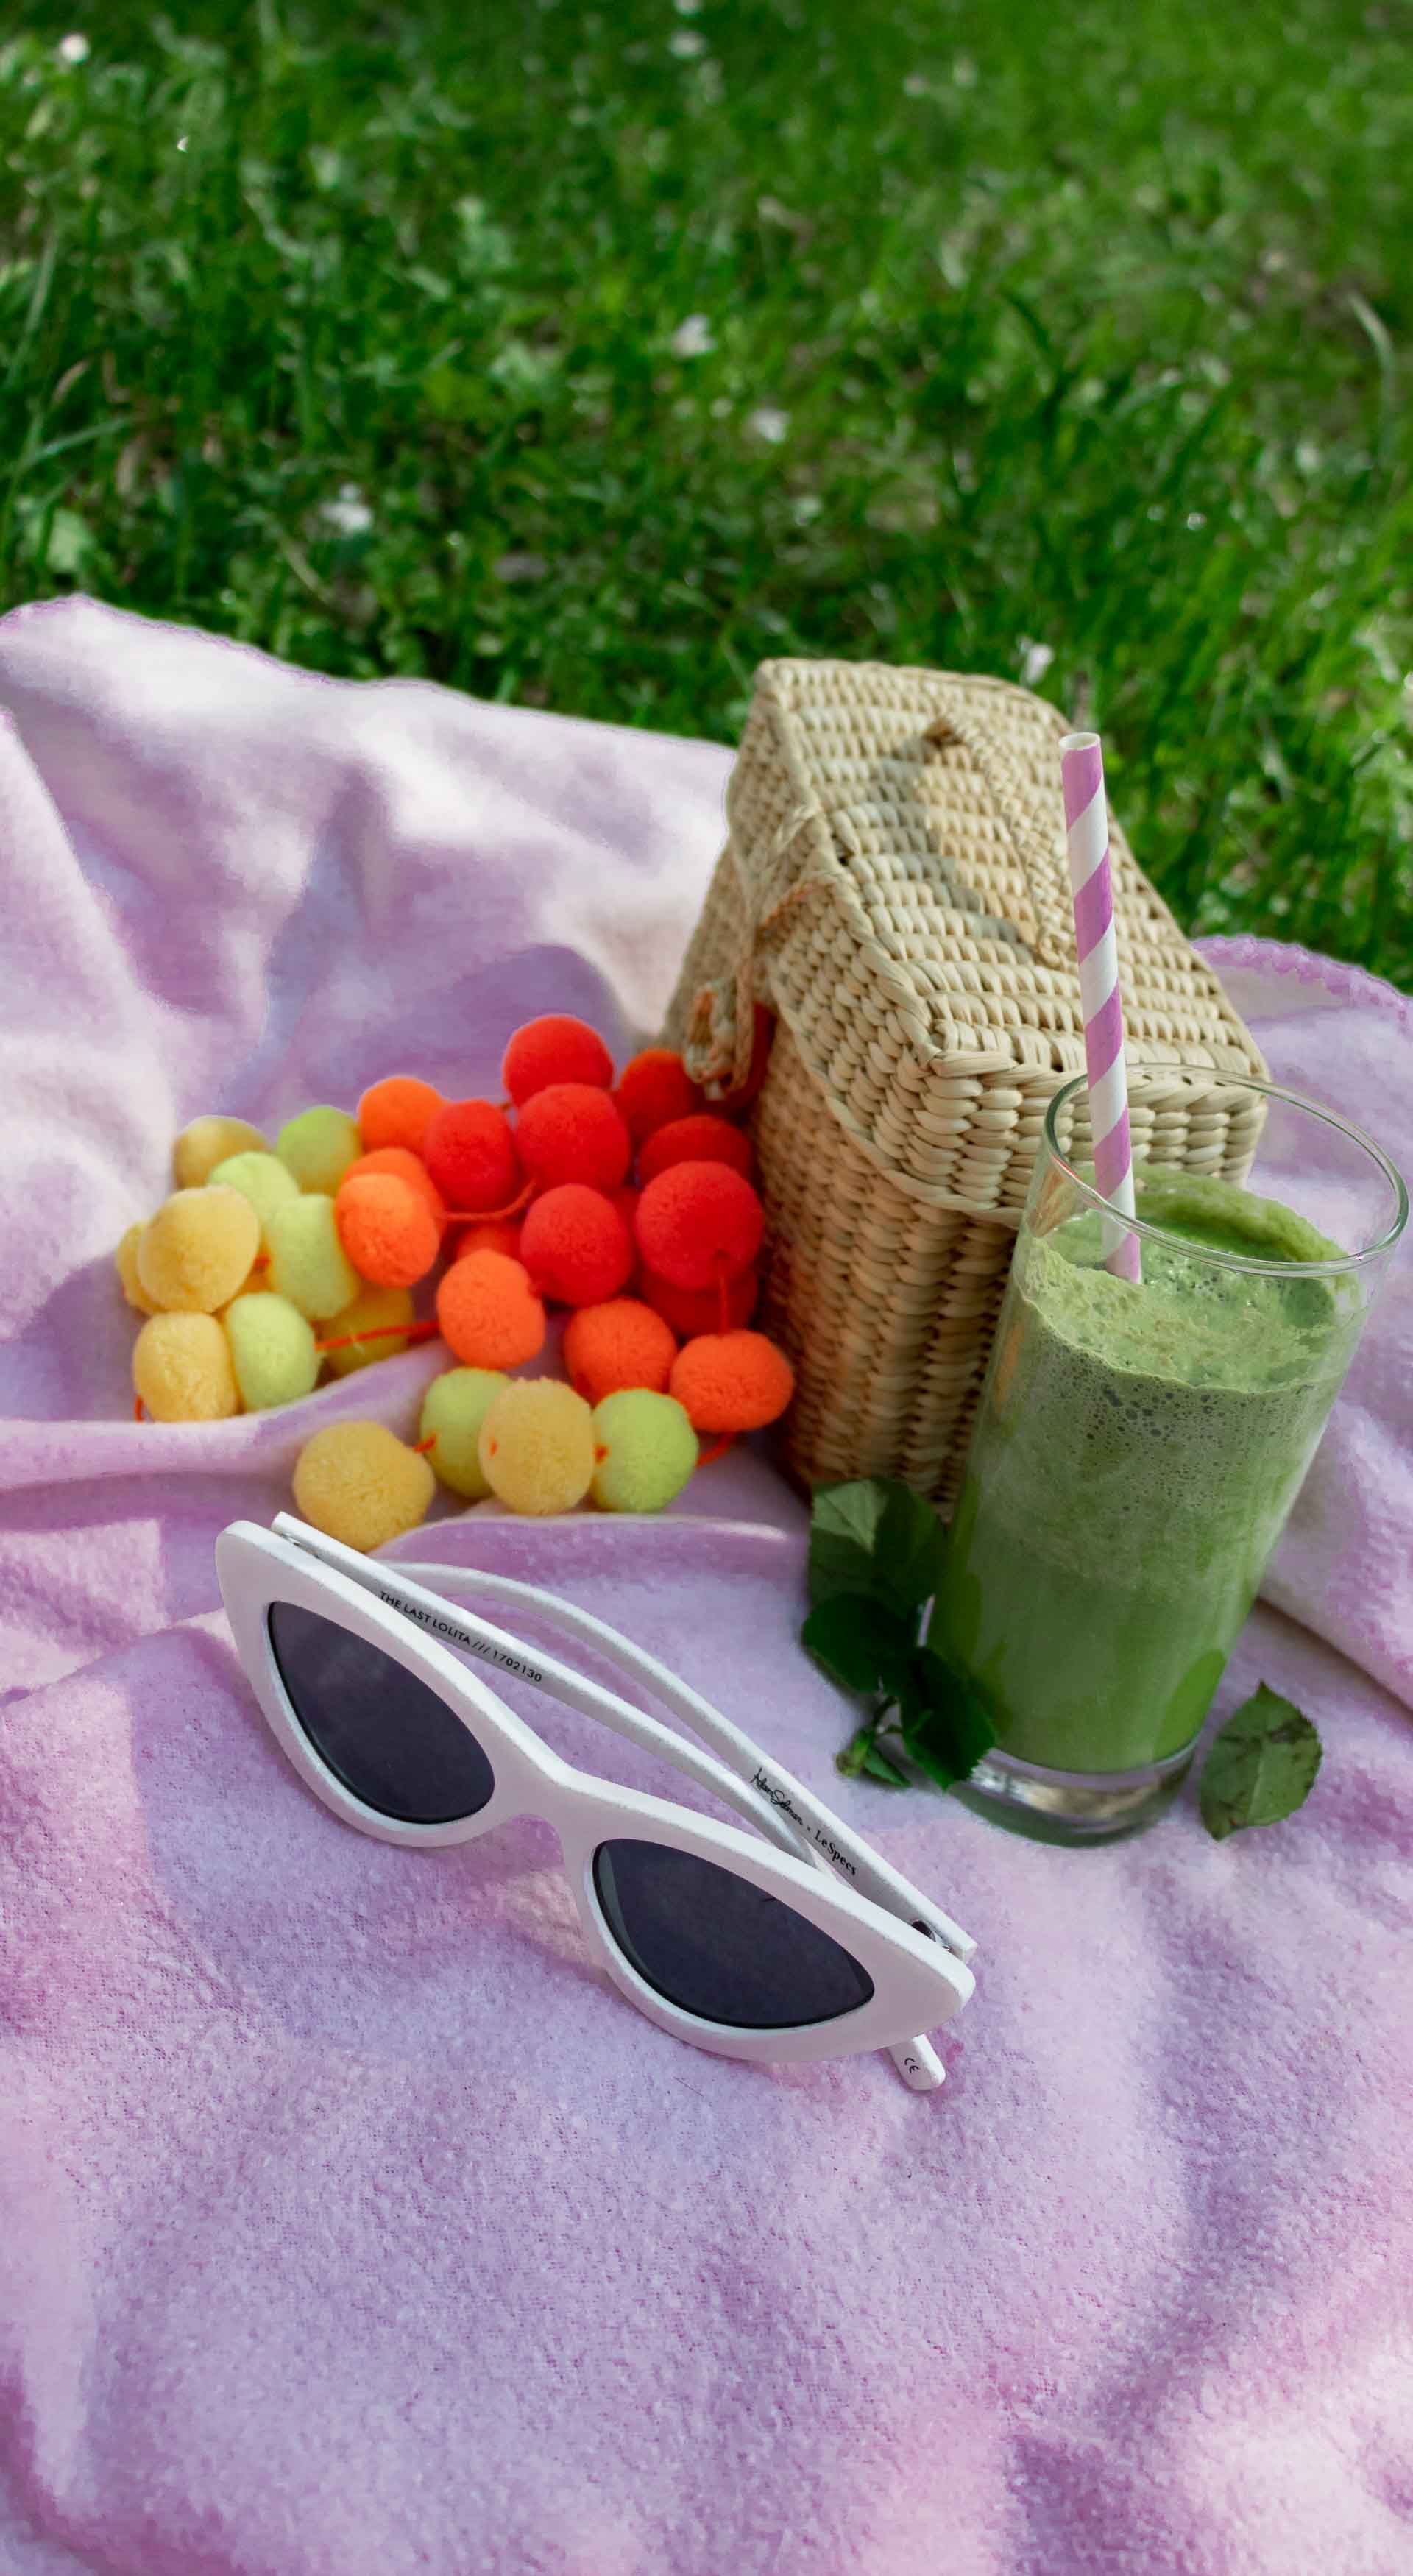 Spring picnic Nannacay basket bag white Le Specs sunglasses green smoothie